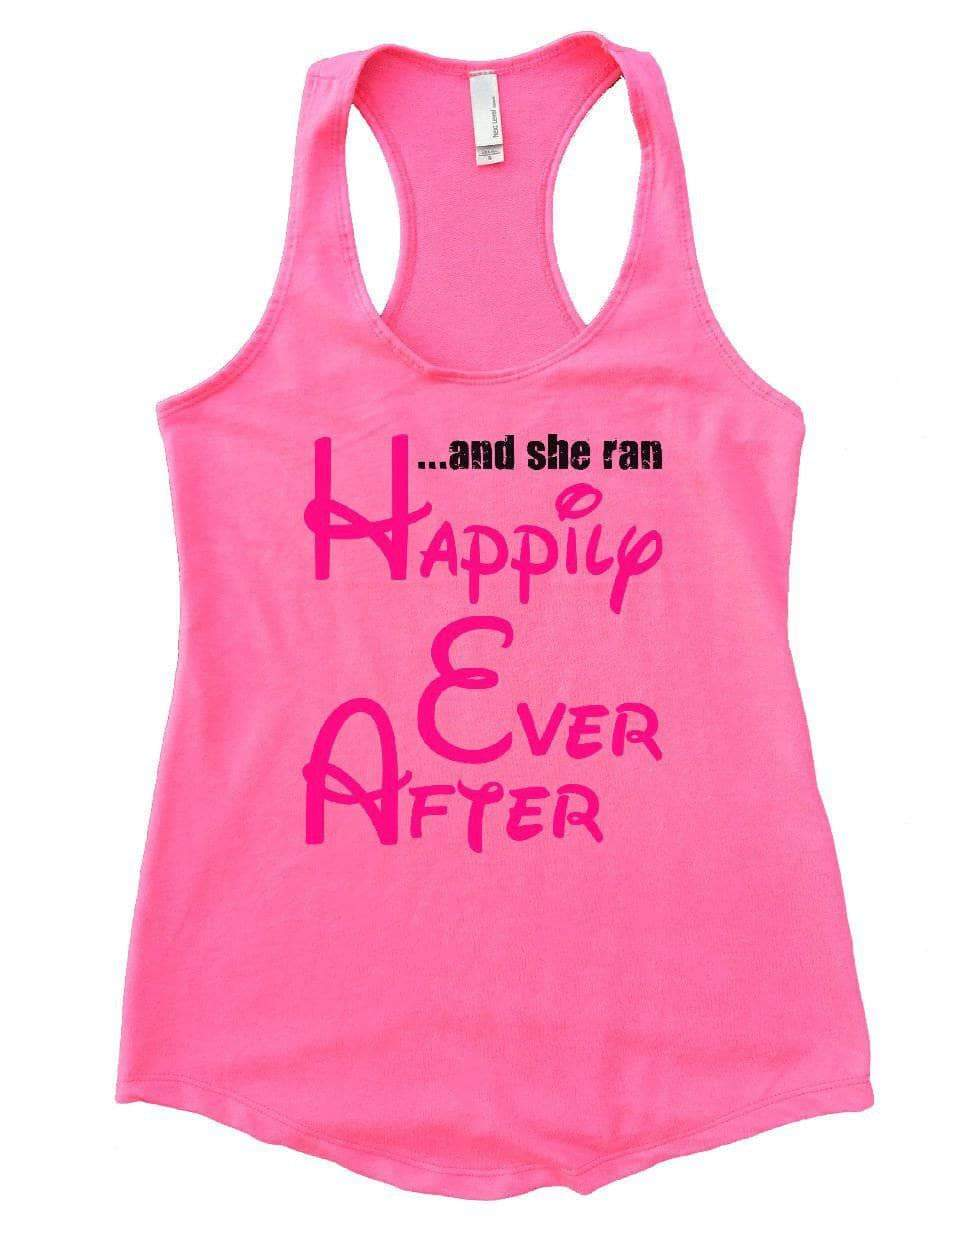 ... And She Ran Happily Ever After Womens Workout Tank Top Small Womens Tank Tops Heather Pink